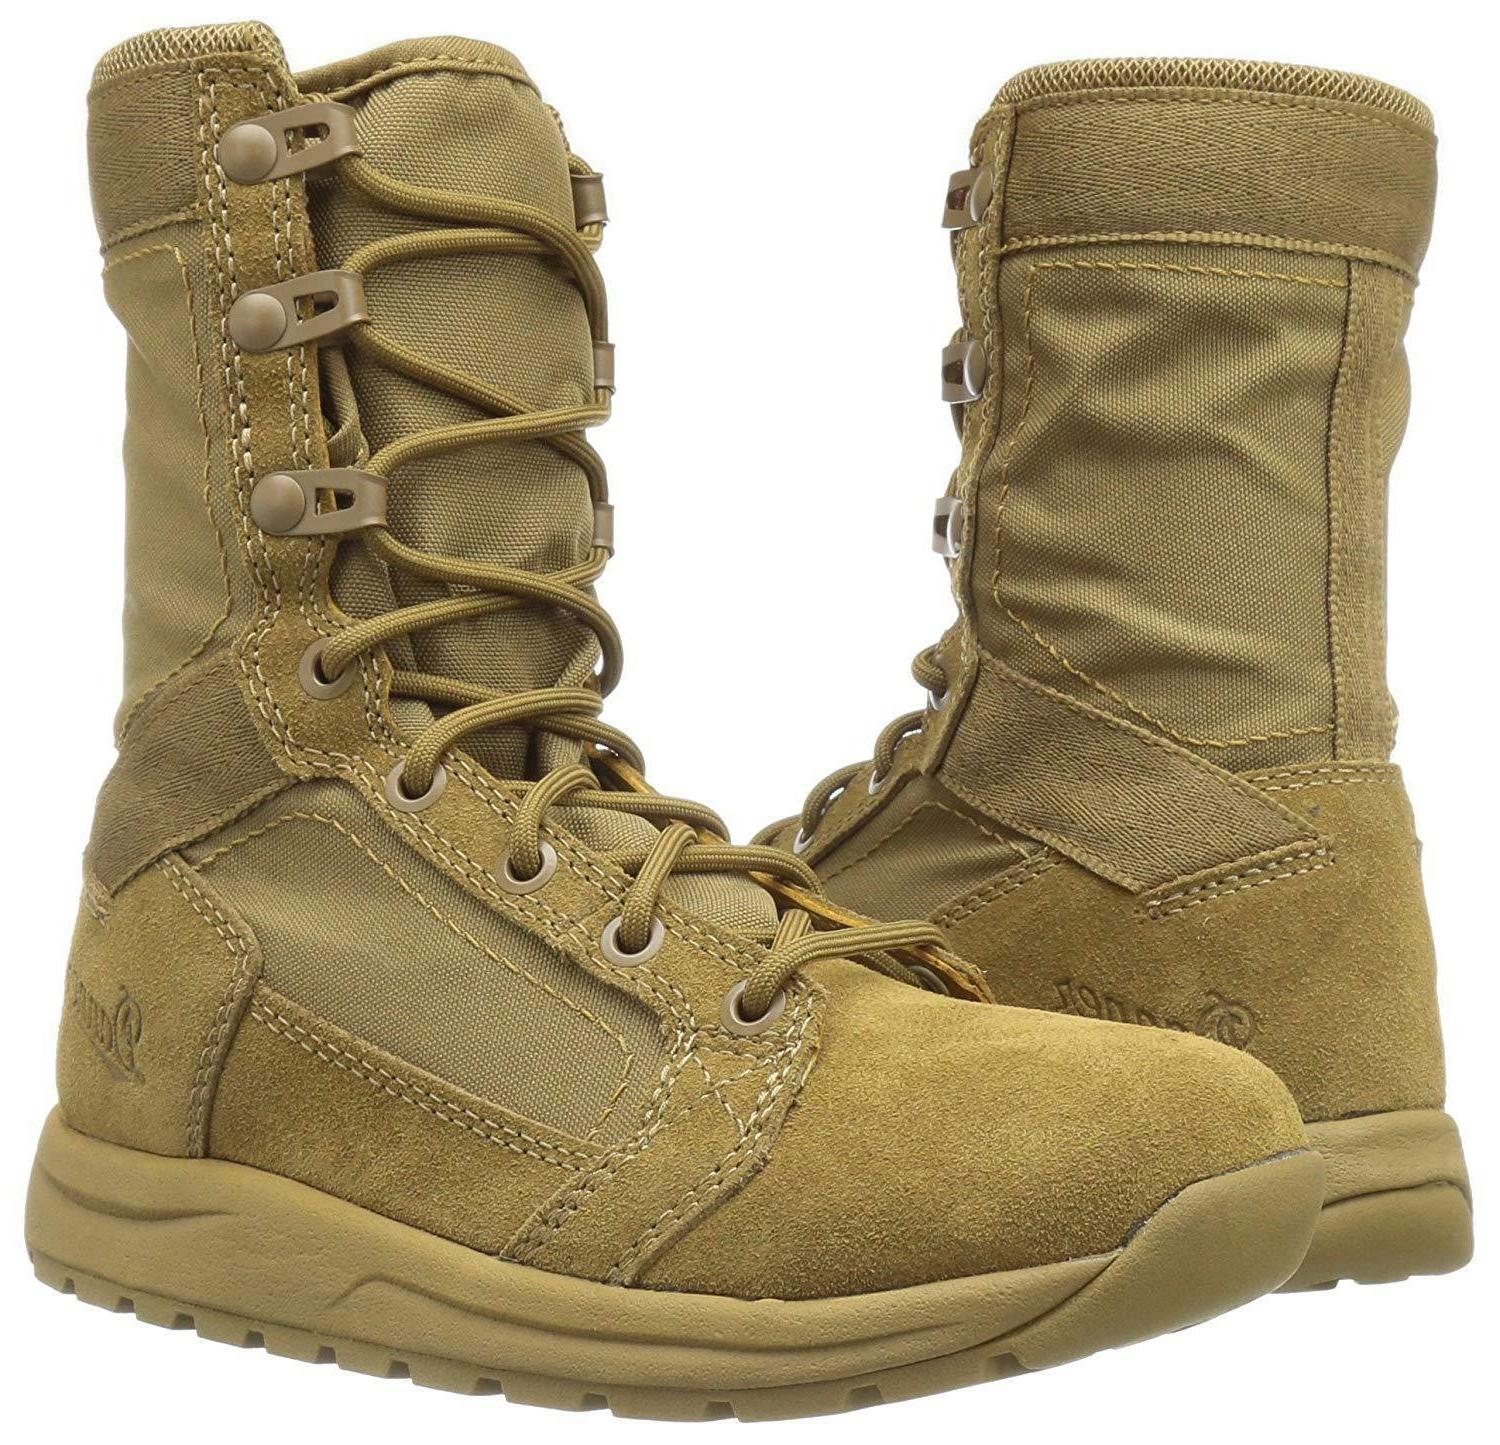 Danner Tachyon inch Coyote Military Tactical